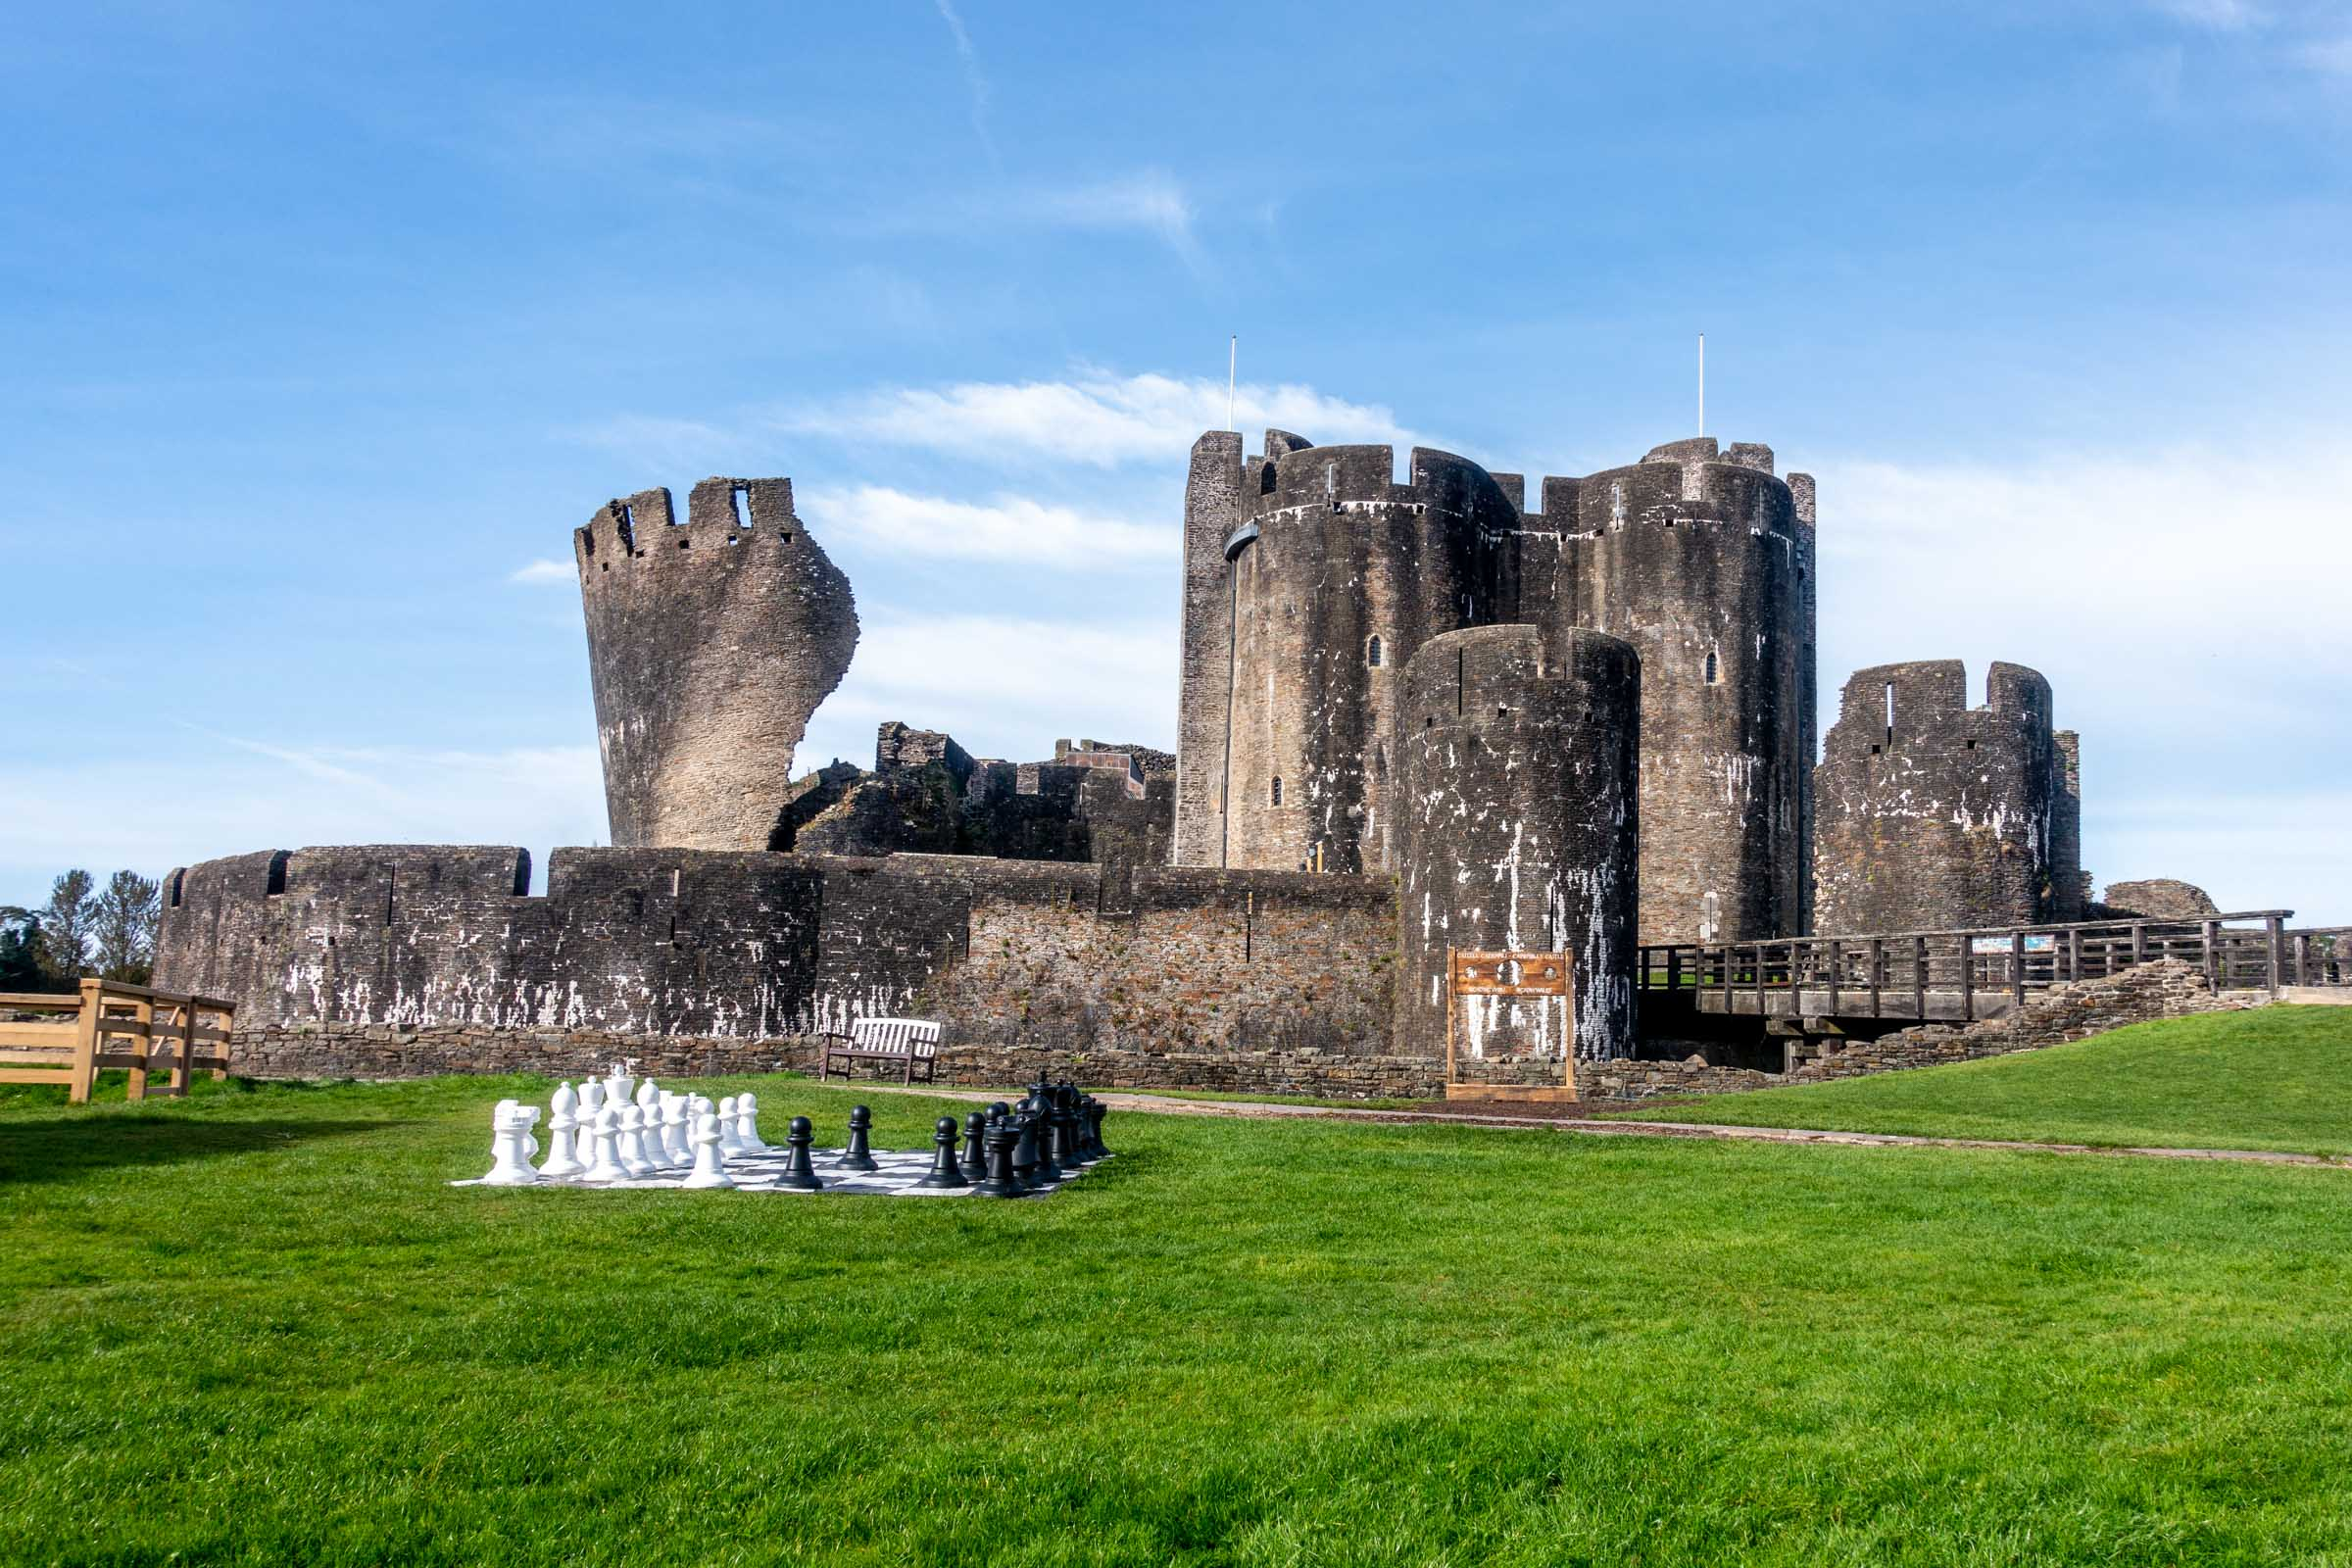 View of the stone towers of Caerphilly Castle with a large lawn chess set in the foreground